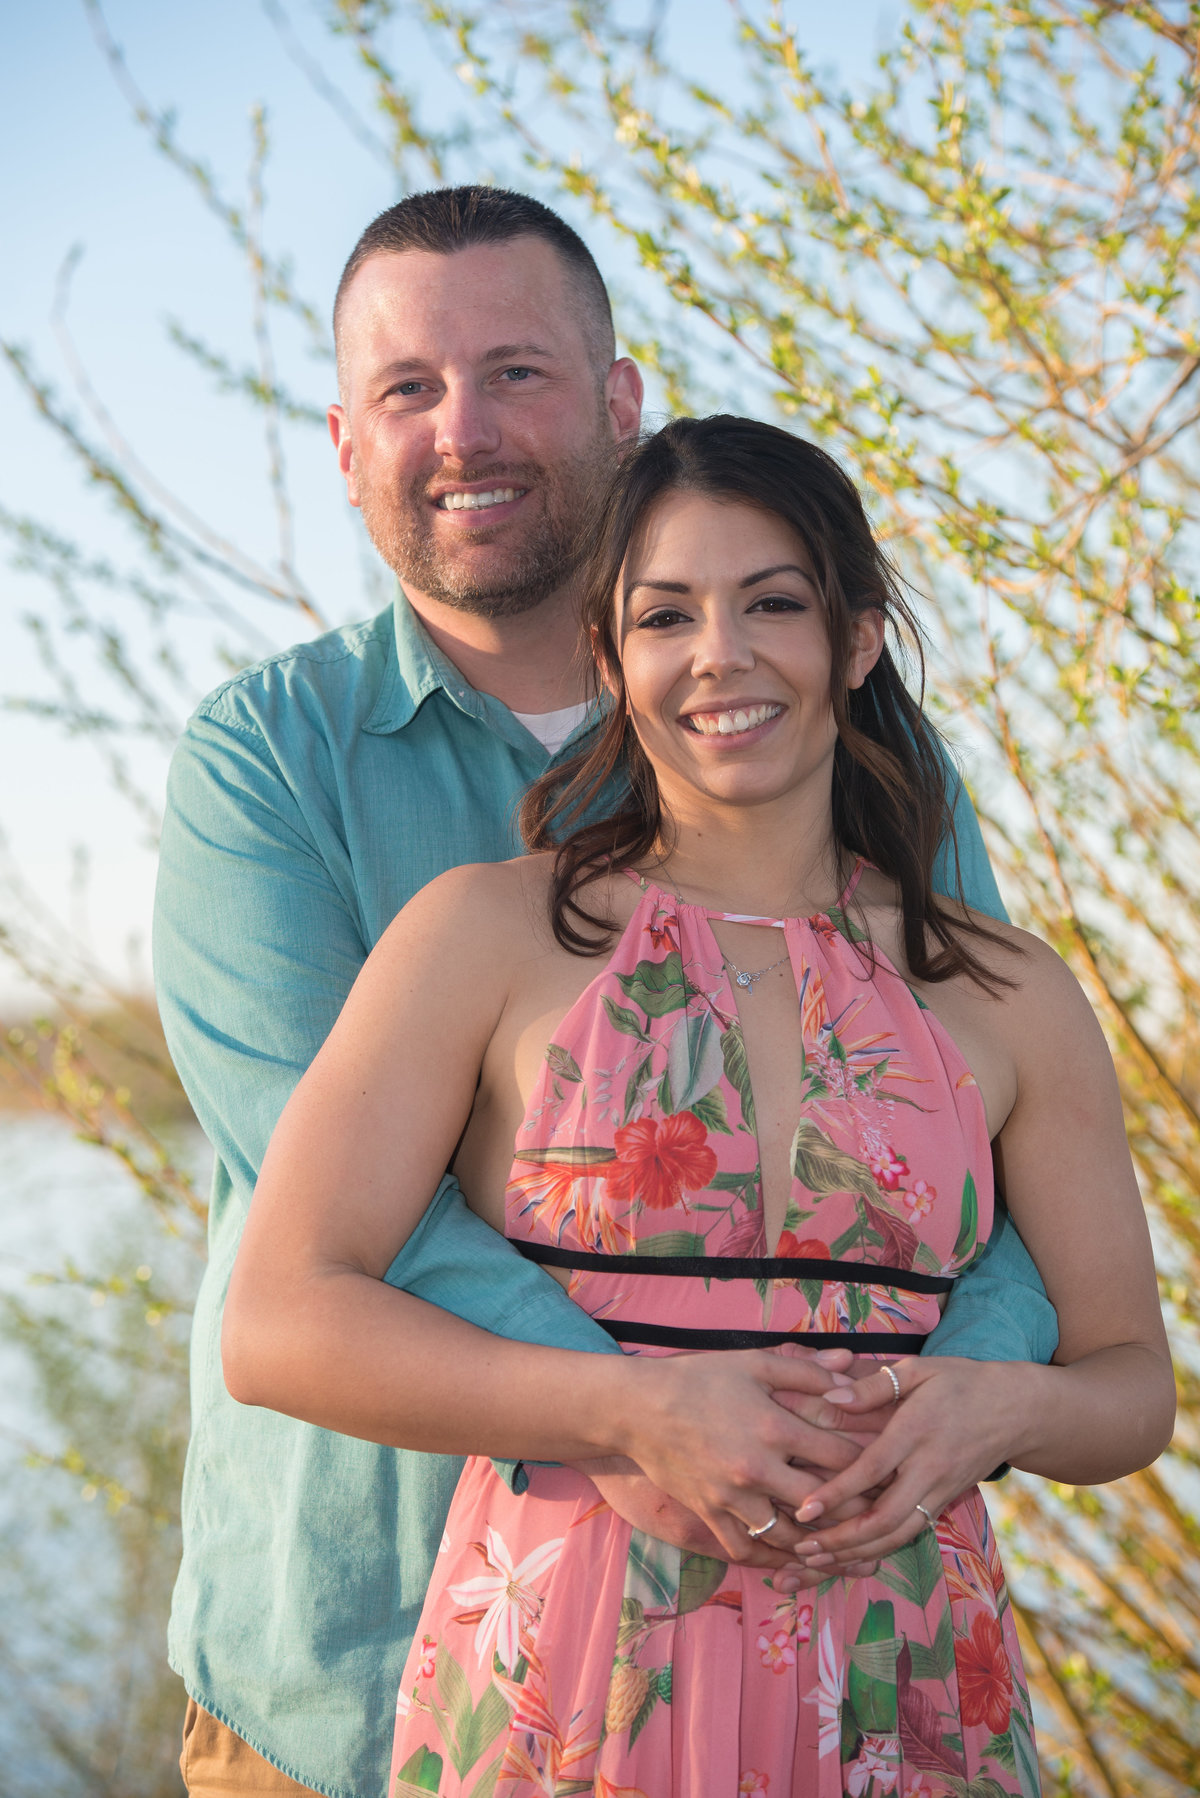 Riverfront Park, Coxsackie, NY, Spring engagement session